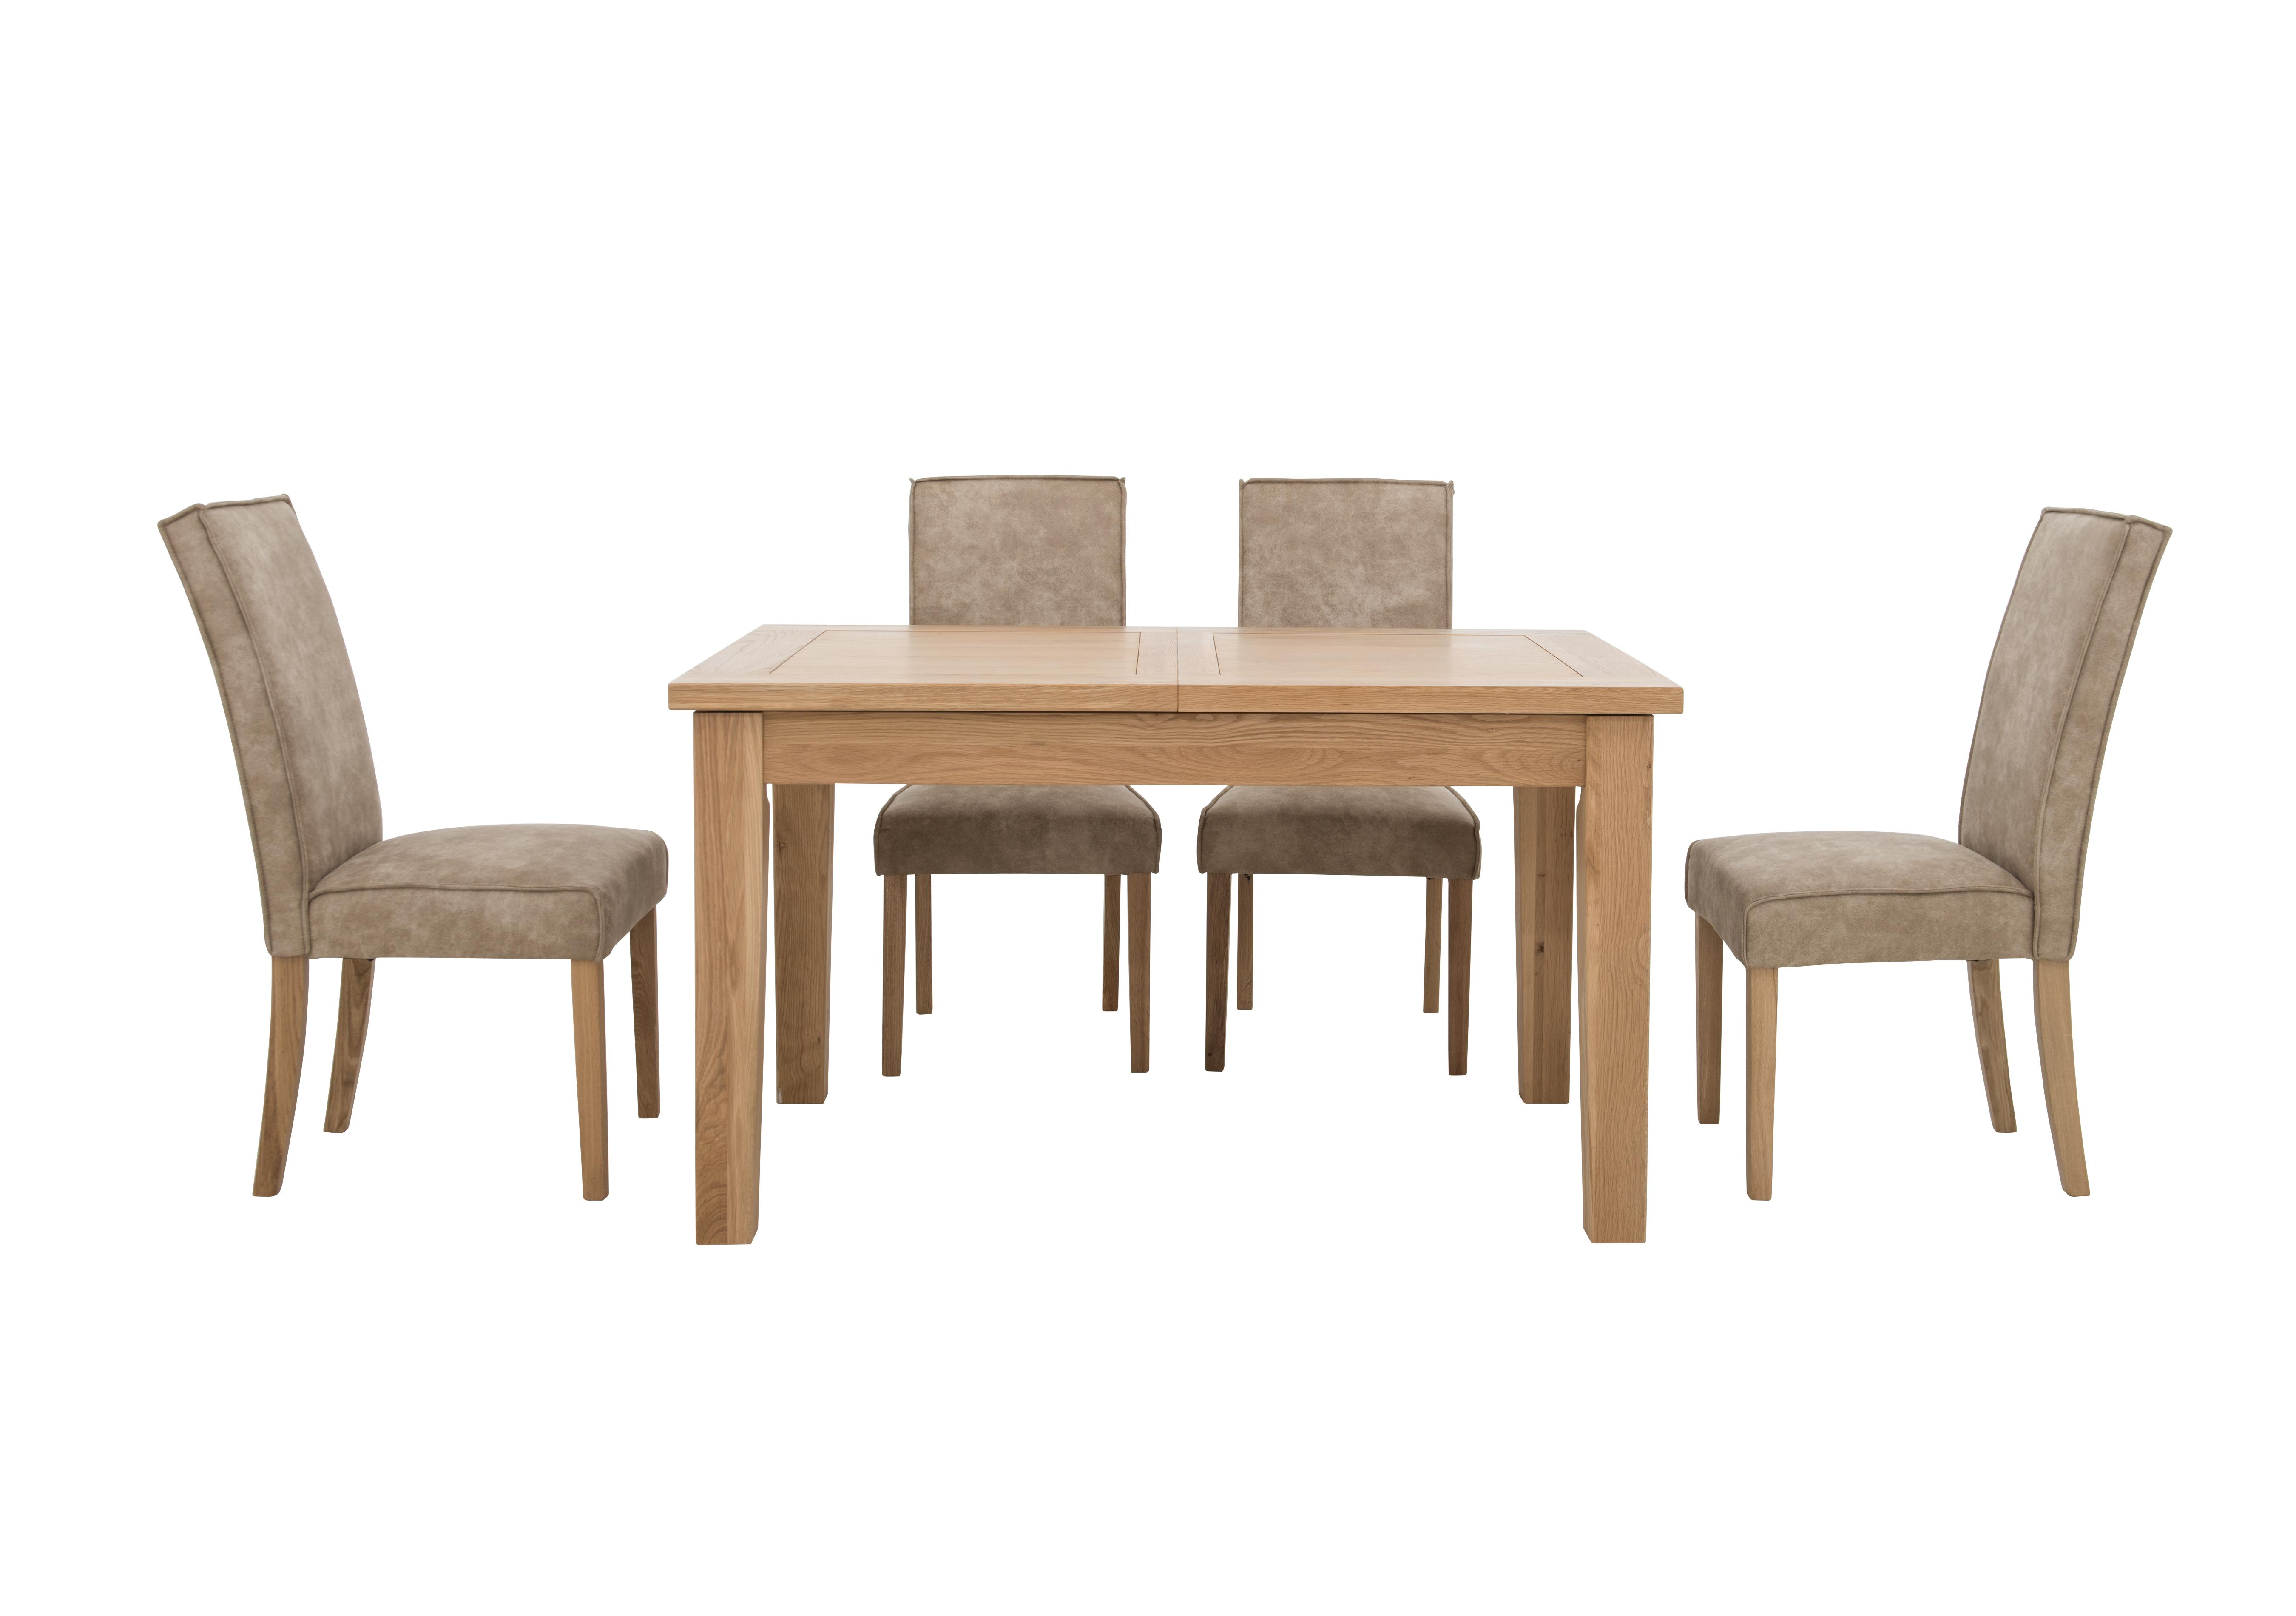 kitchen table chairs set exhaust fan installation california and 4 faux suede furniture village furnitureland extending rectangle dining